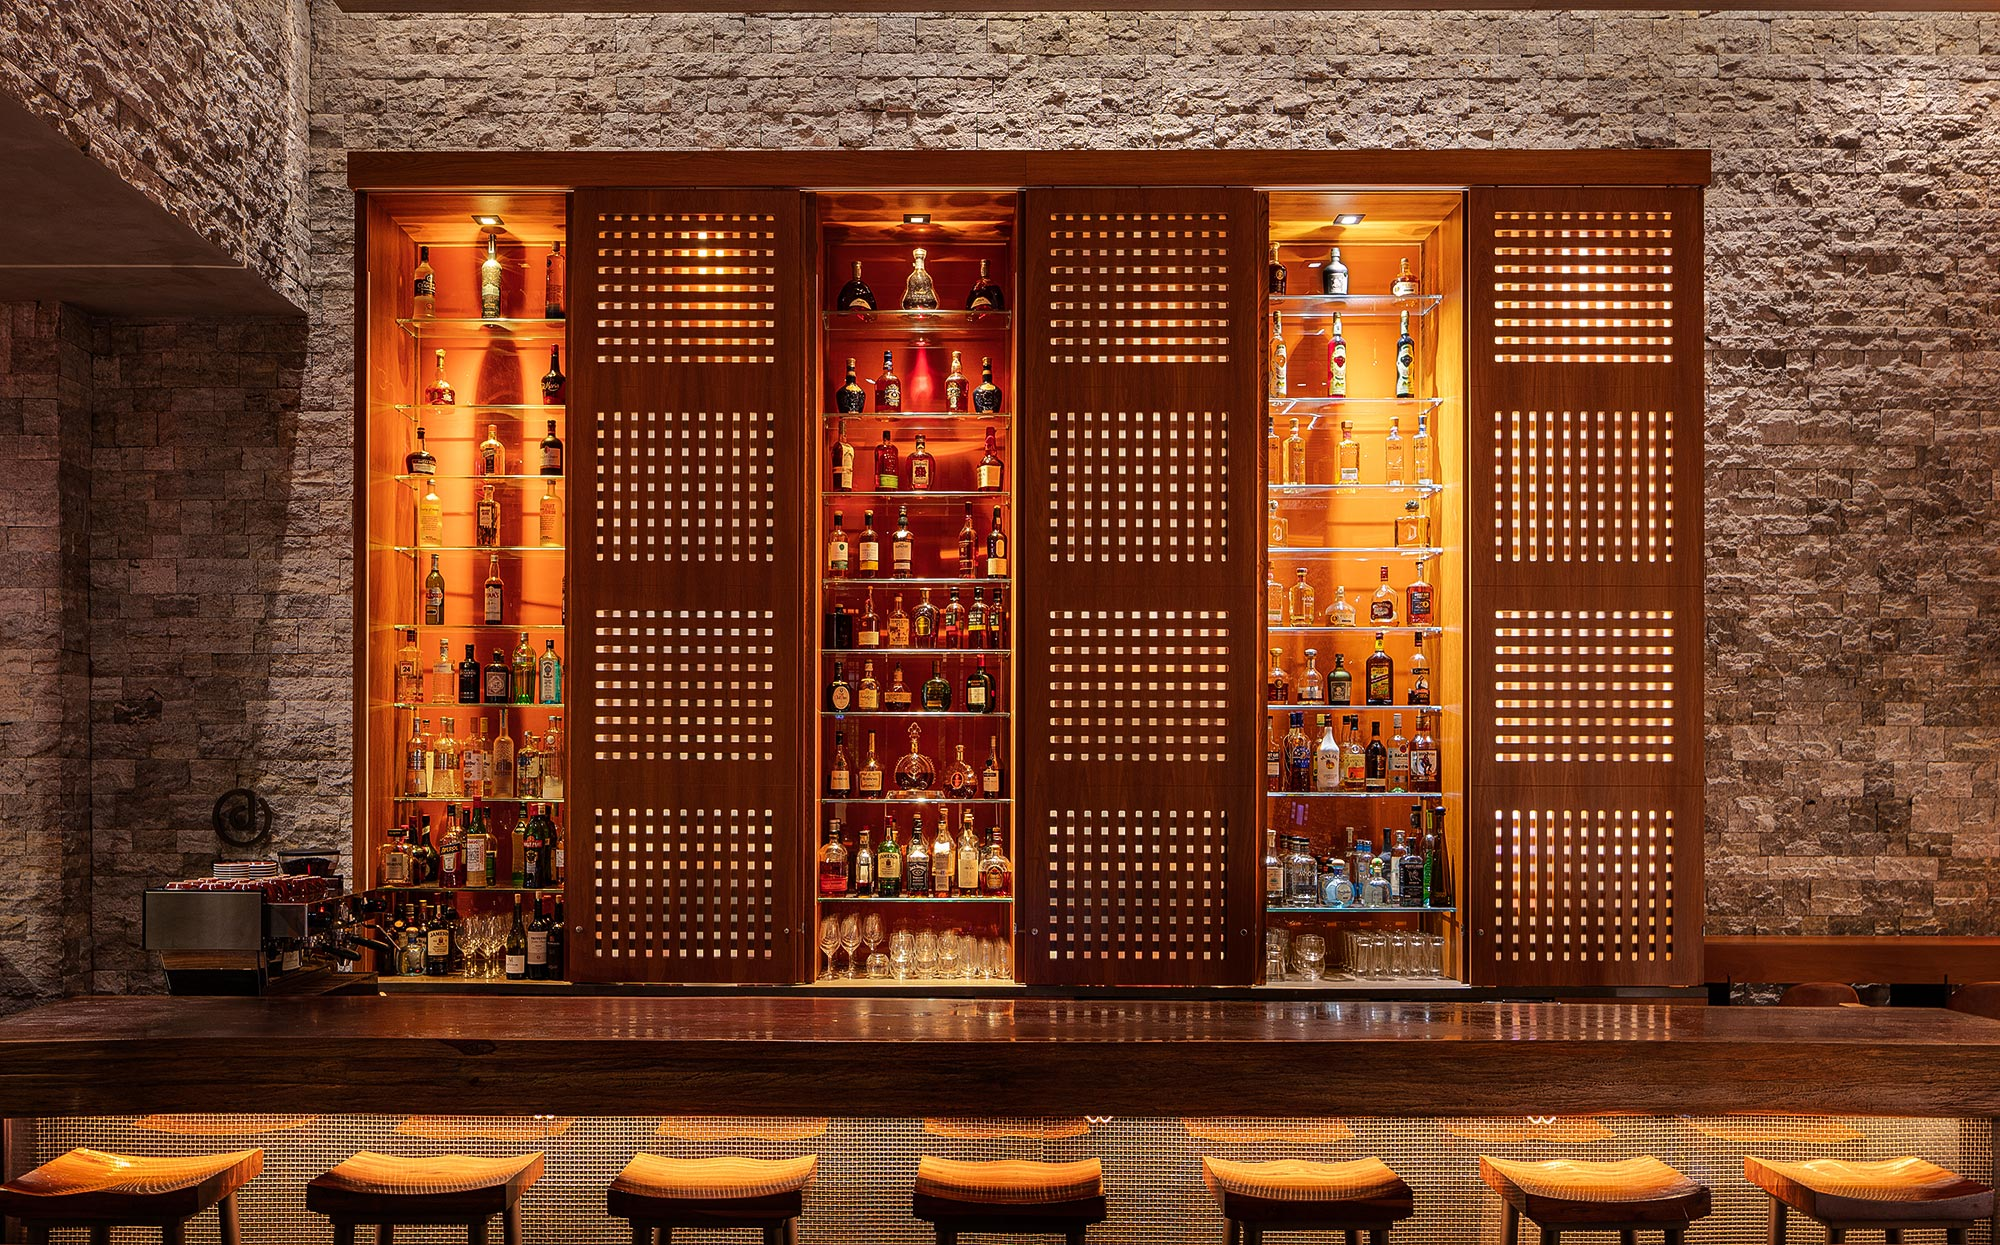 Hotel-Bar-Photography-Miami-Florida-by-Swiss-Photographer-Adrian-Kilchherr-